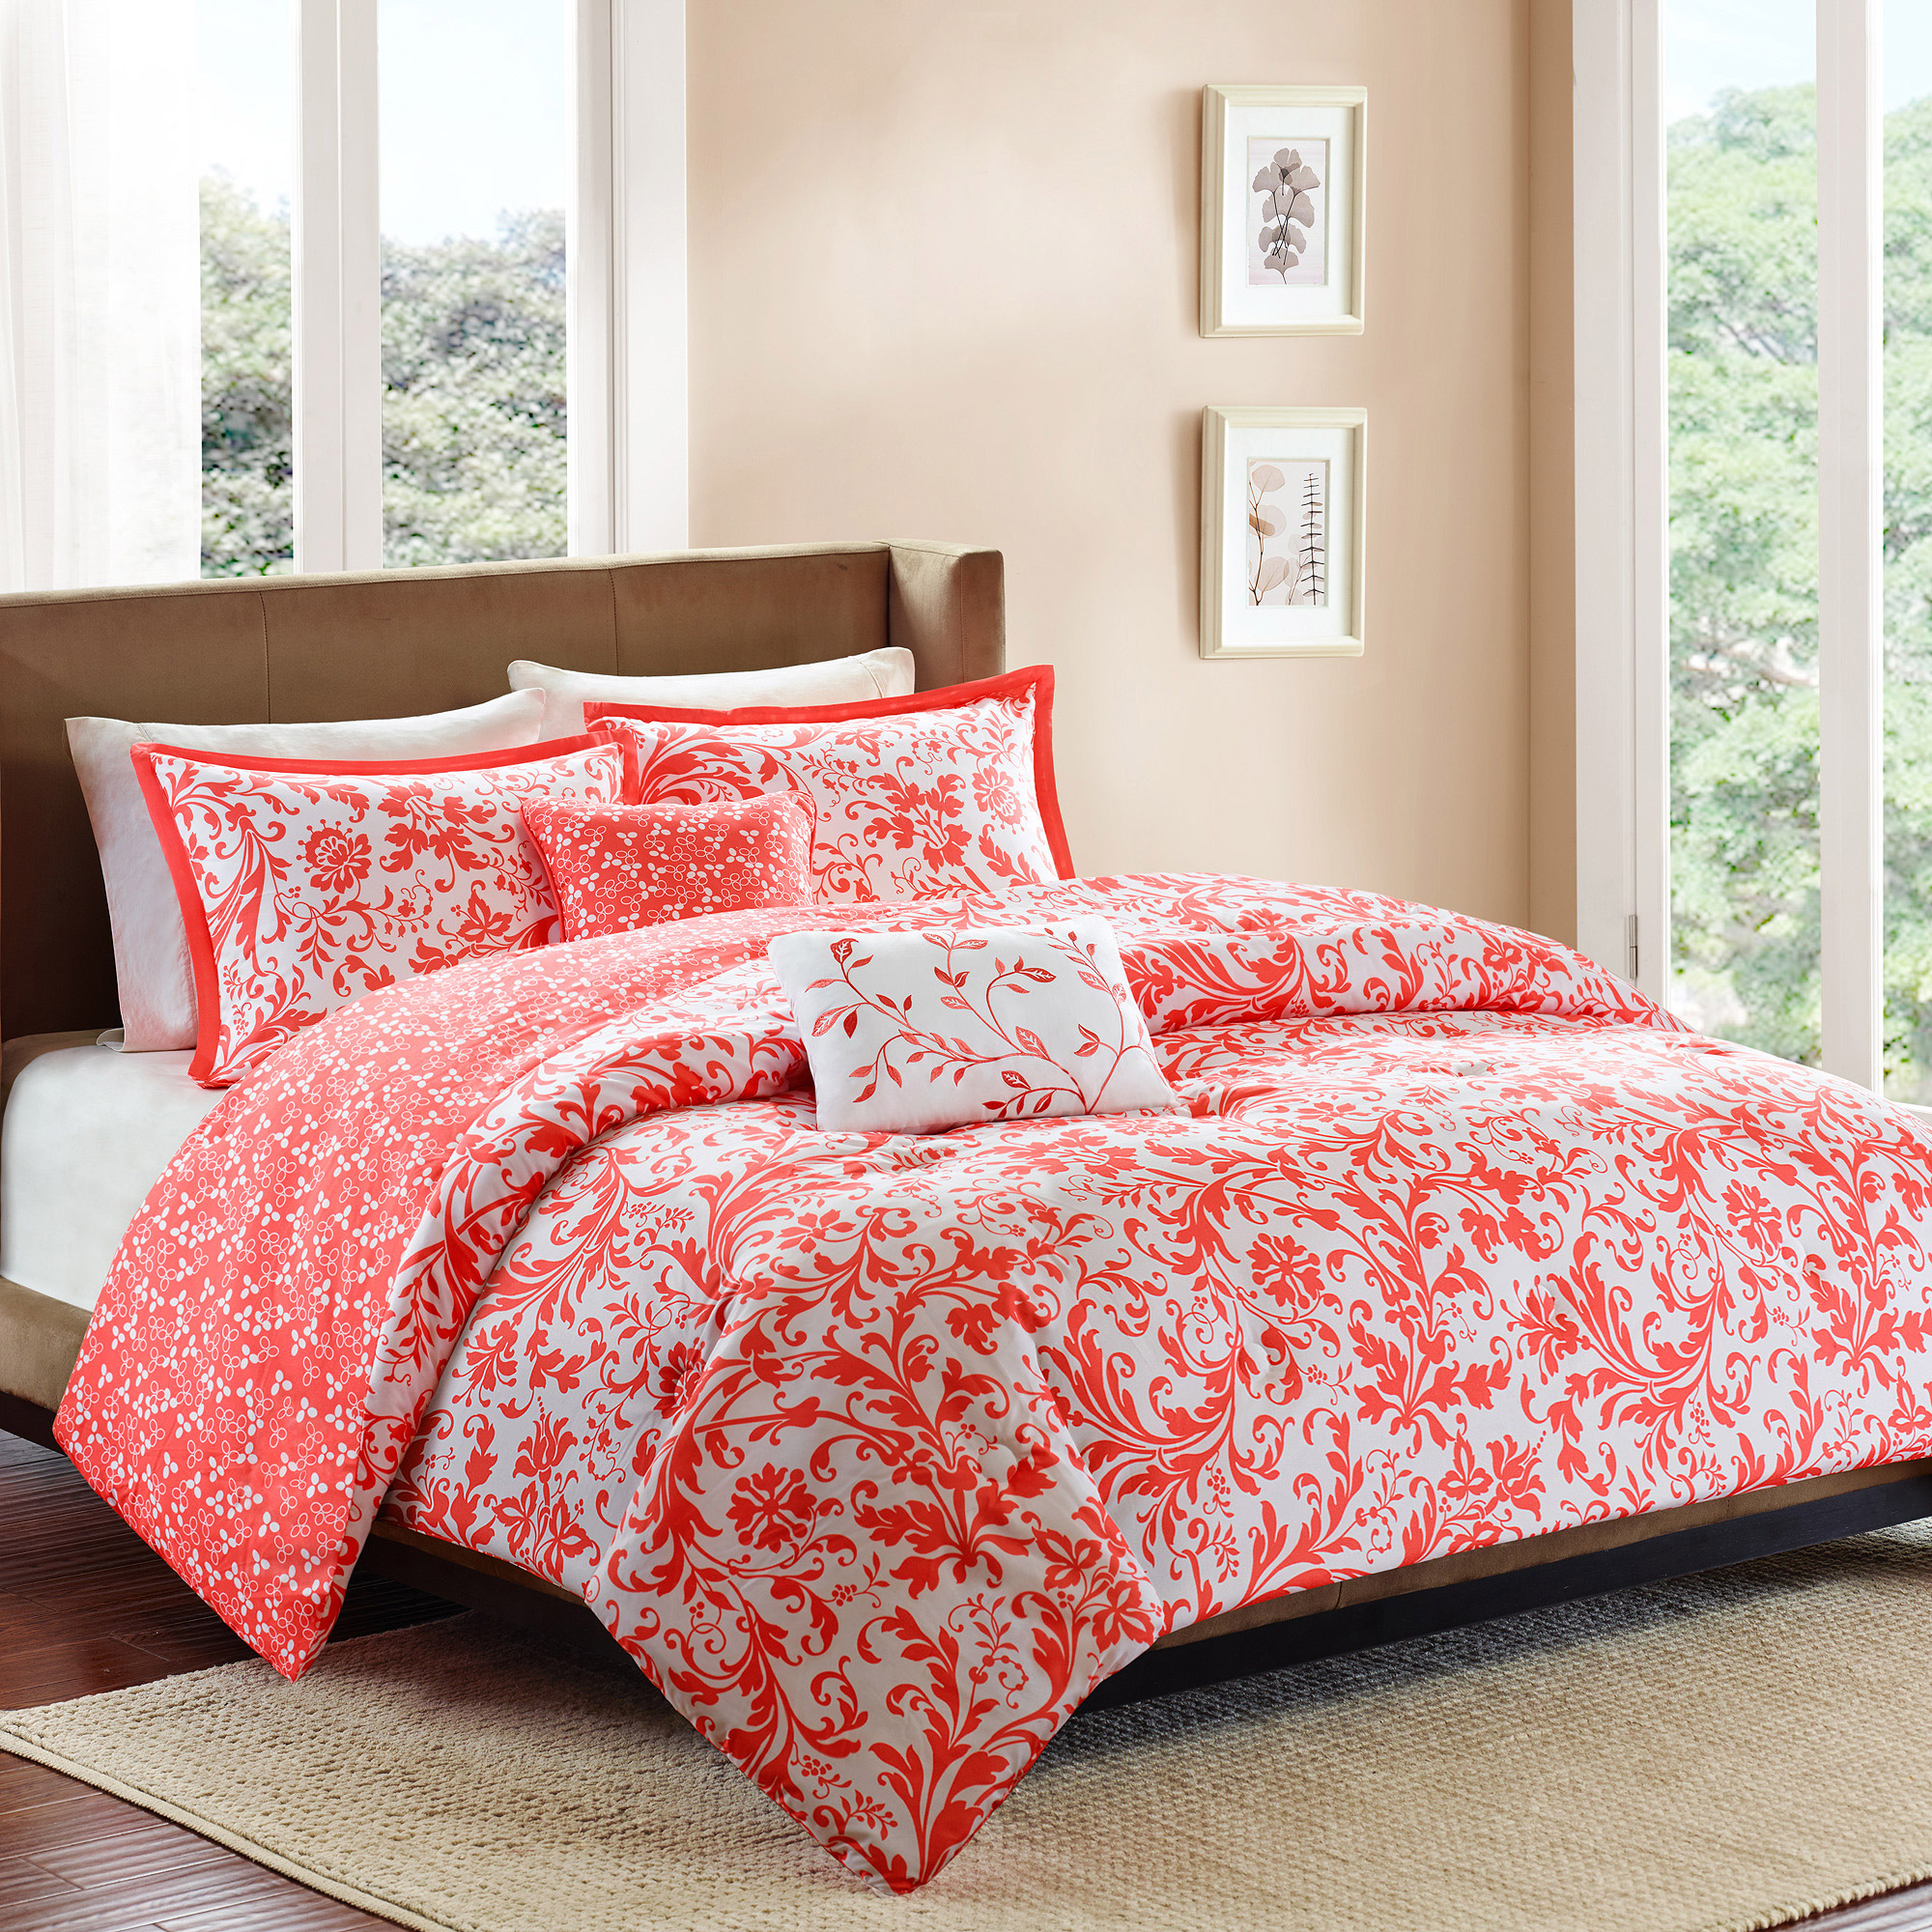 set p metaphor hei qlt prod comforter orange sets aspect wid king